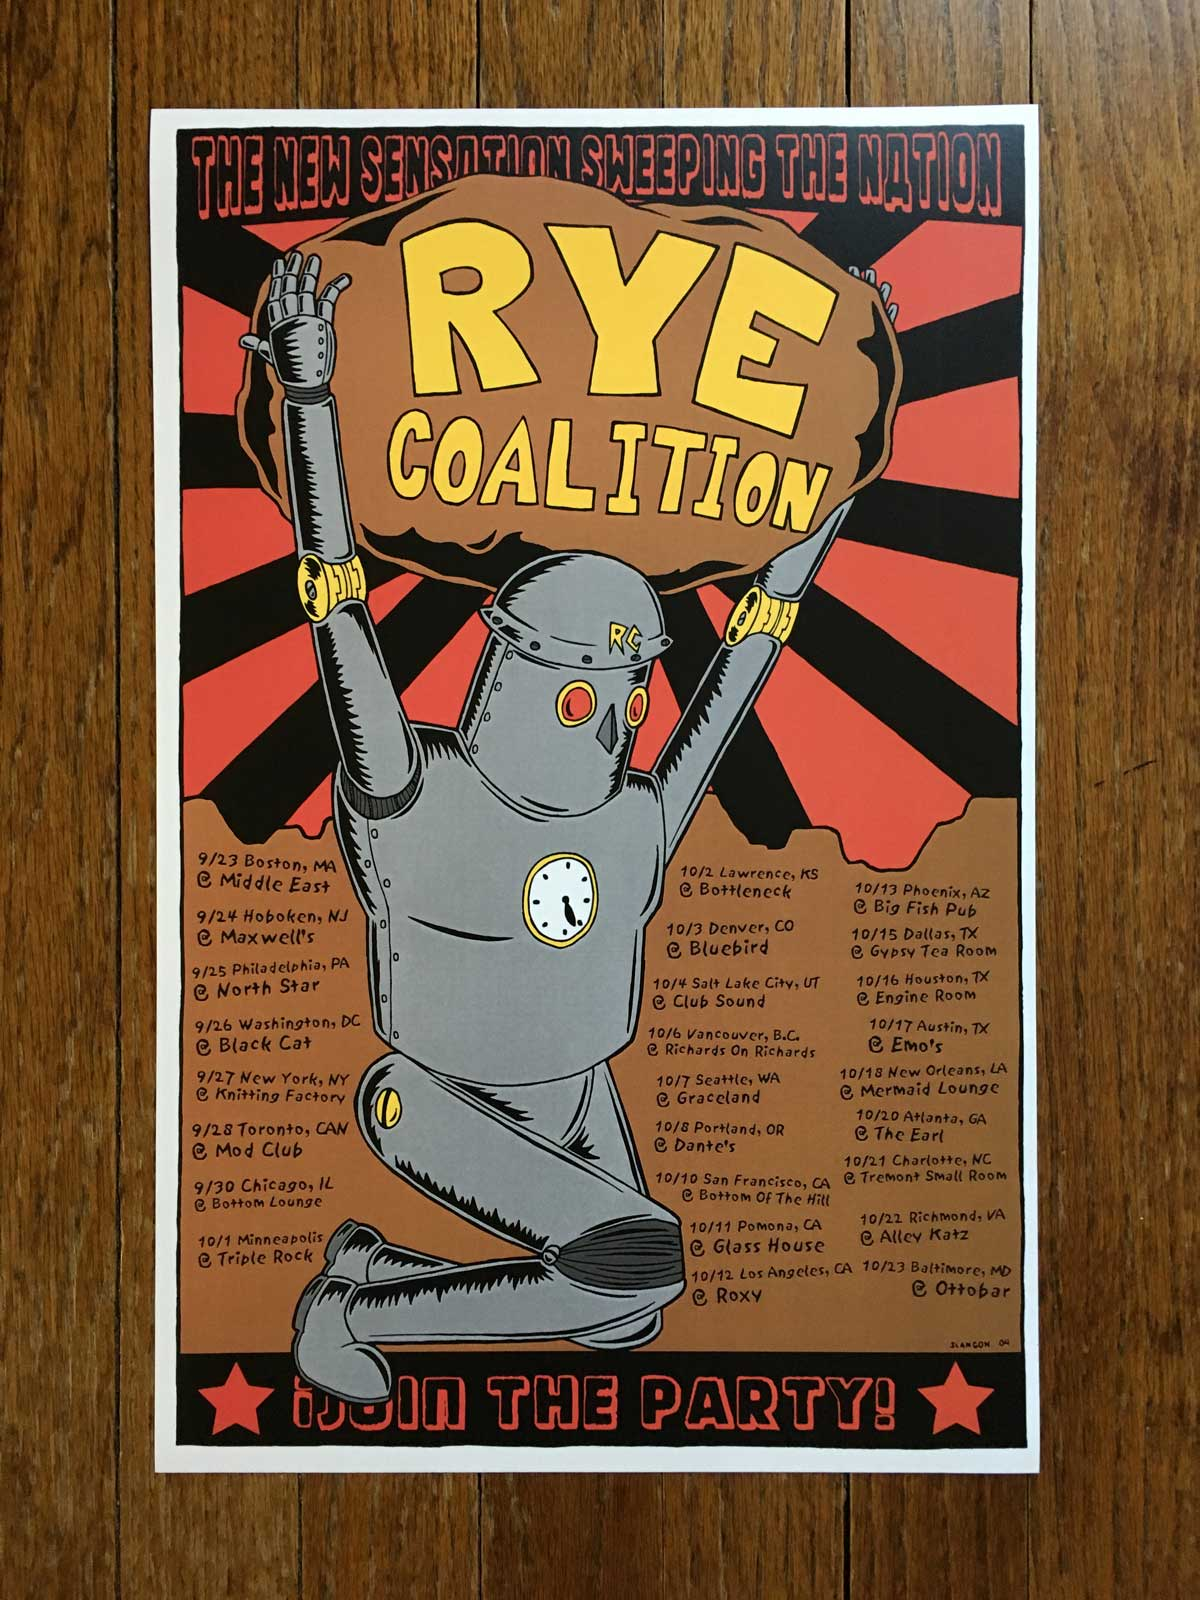 Rye Coaltion Fall 2004 Tour Poster